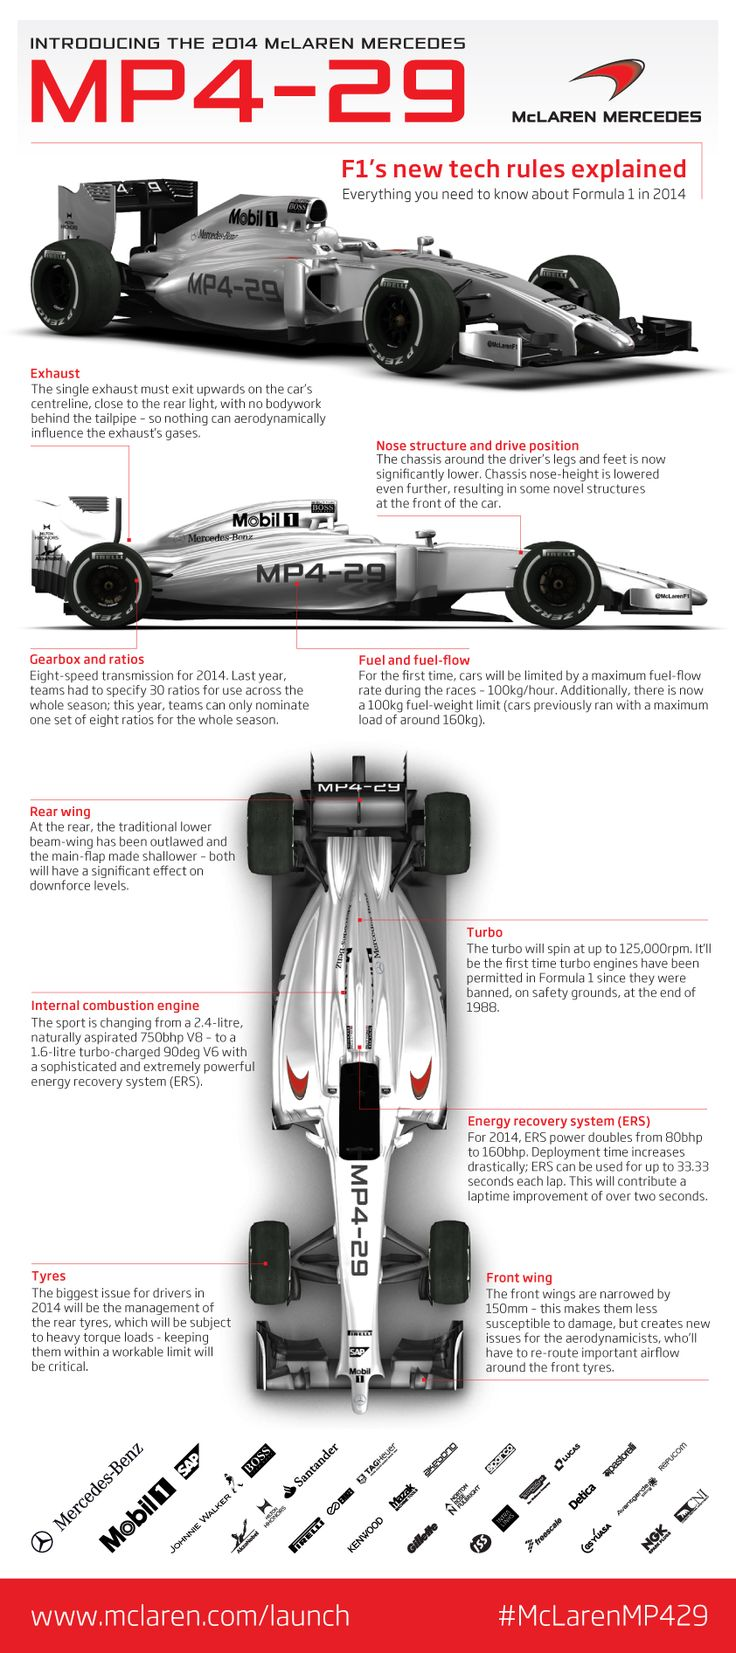 2014 McLaren Mercedes MP4-29 Infographic: By the Book (F1 2014 Rule Book) May be ugly now, but if it starts winning it'll be a beaut!